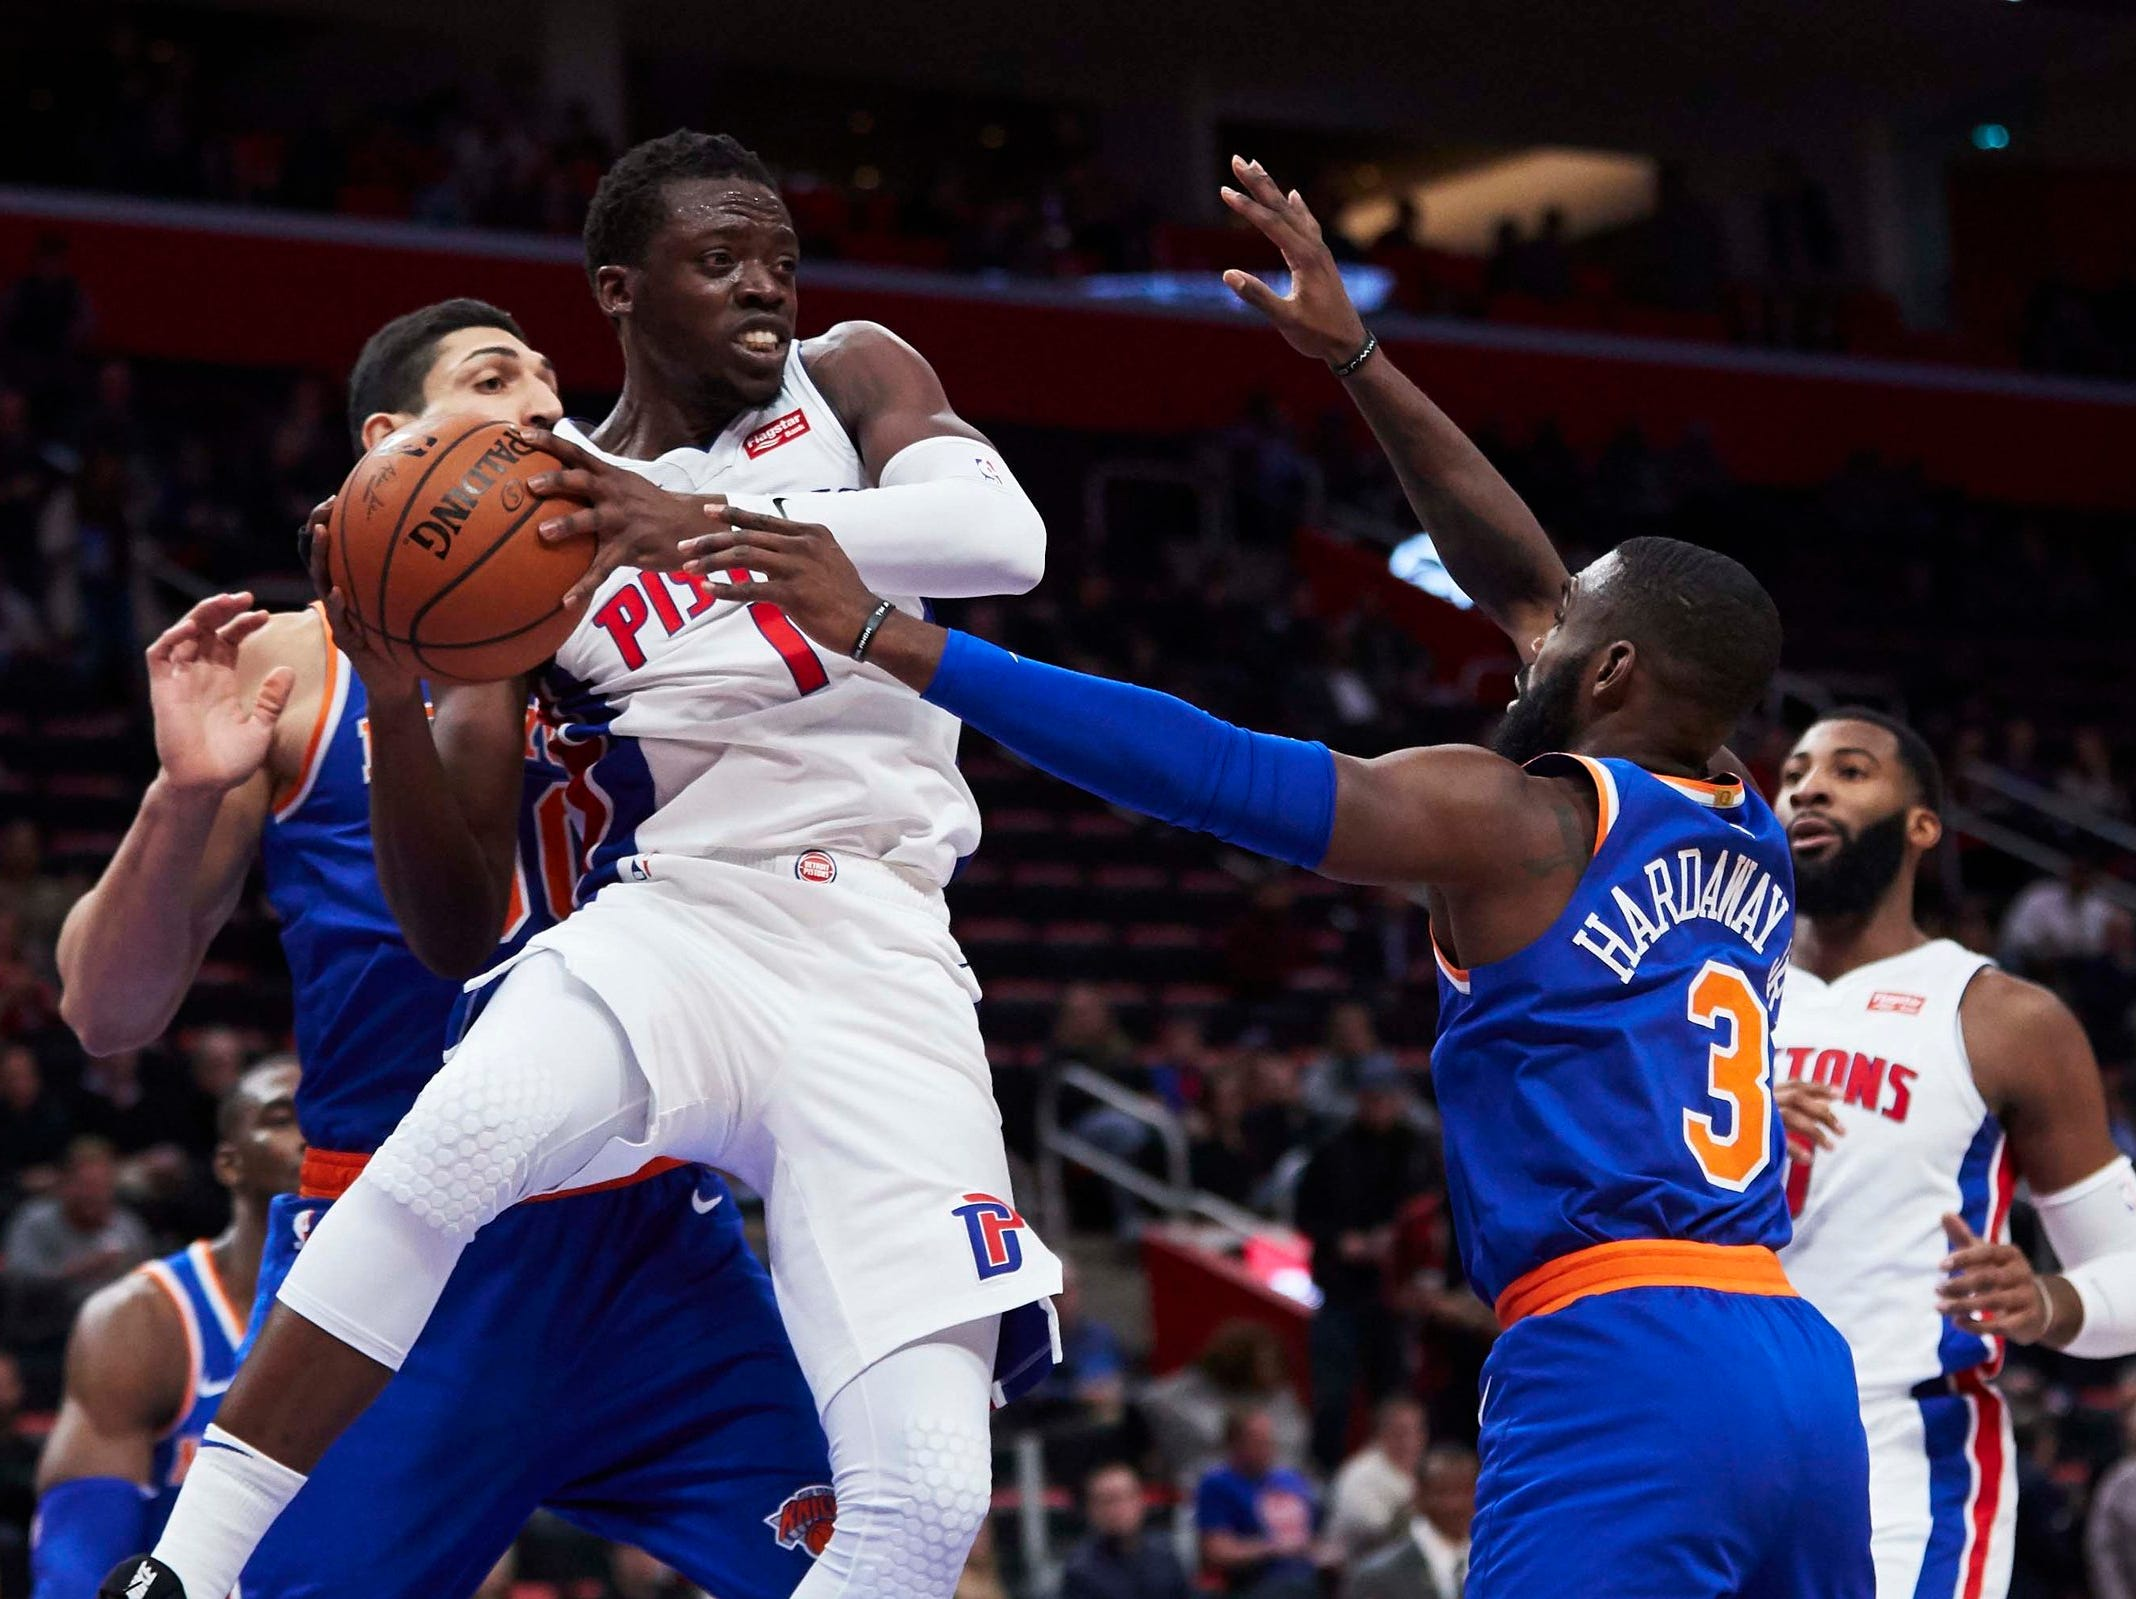 Detroit Pistons guard Reggie Jackson (1) passes defended by New York Knicks guard Tim Hardaway Jr. (3) in the first half at Little Caesars Arena.